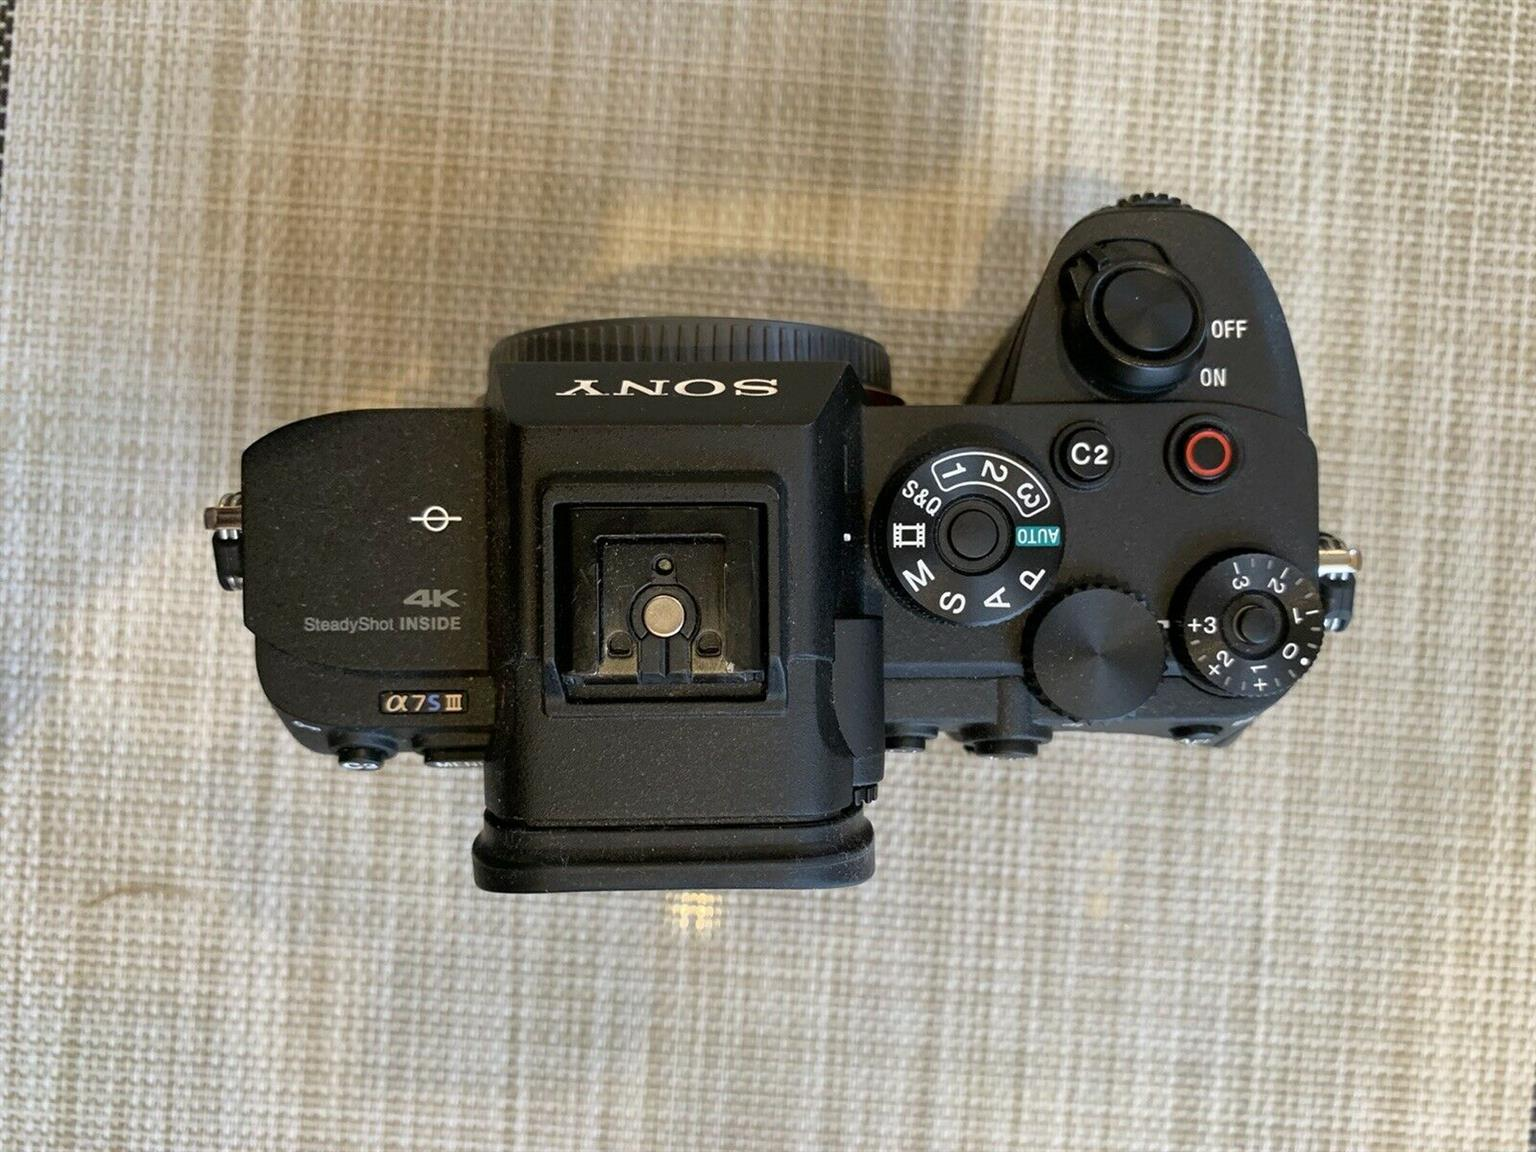 Clean Sony Alpha 7s iii with 3422 shutter